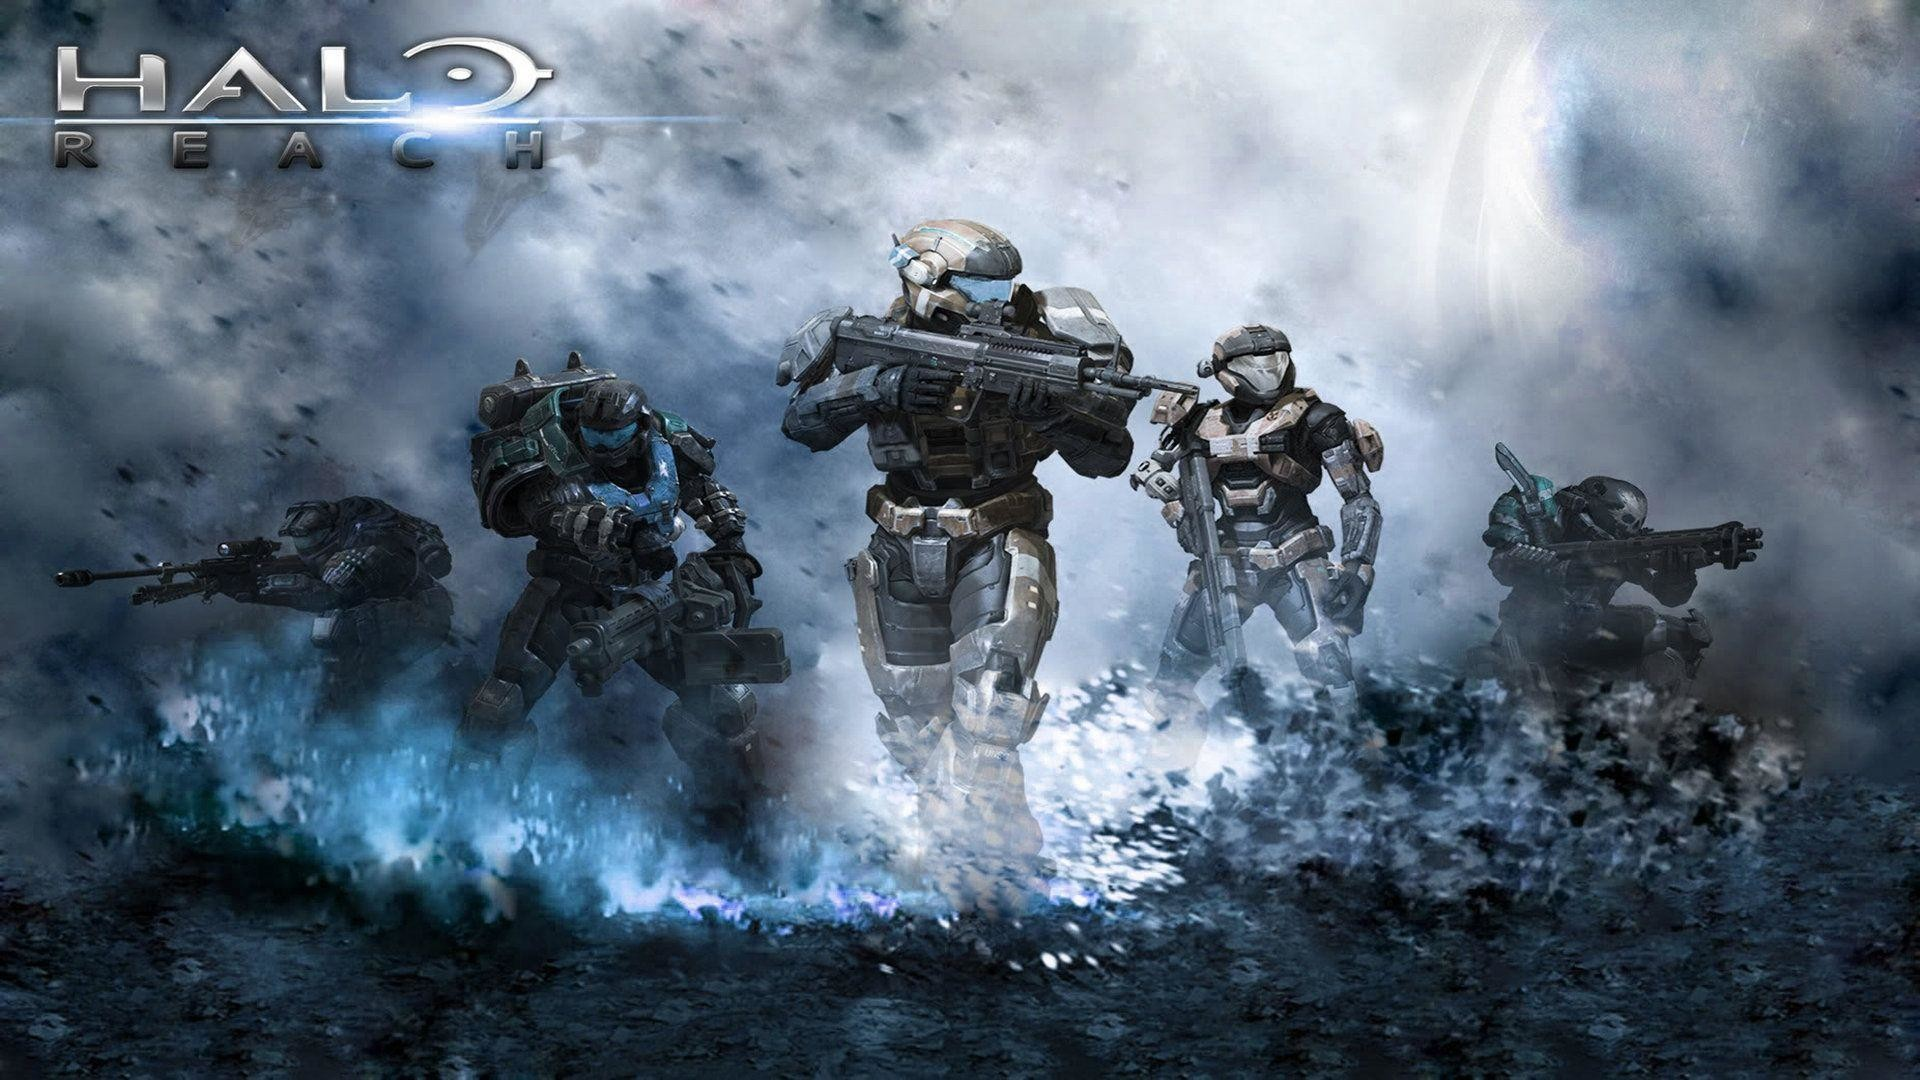 1920x1080 Wallpapers For > Halo Reach Wallpaper Hd 1080p